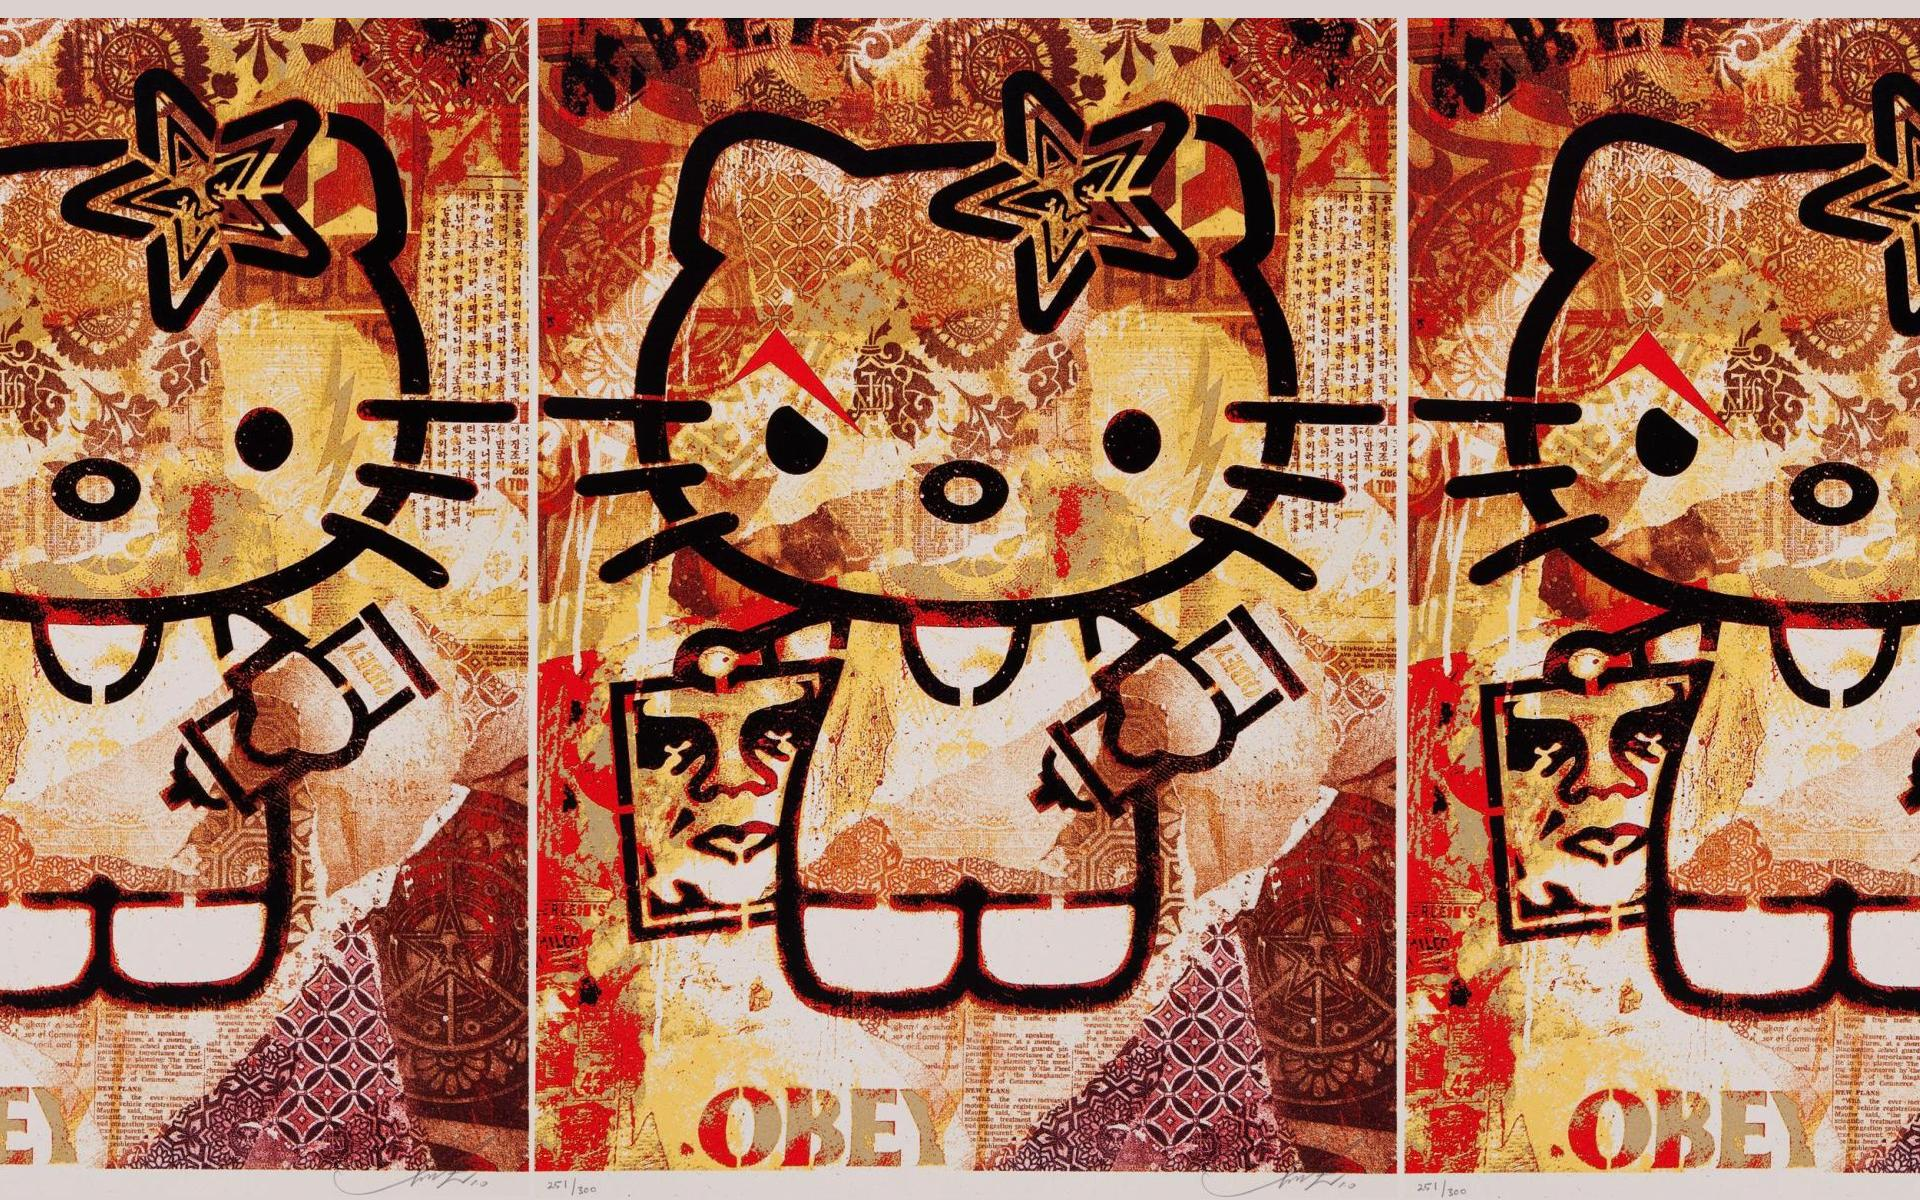 Obey Hello Kitty Wallpapers Obey Hello Kitty Myspace Backgrounds 1920x1200